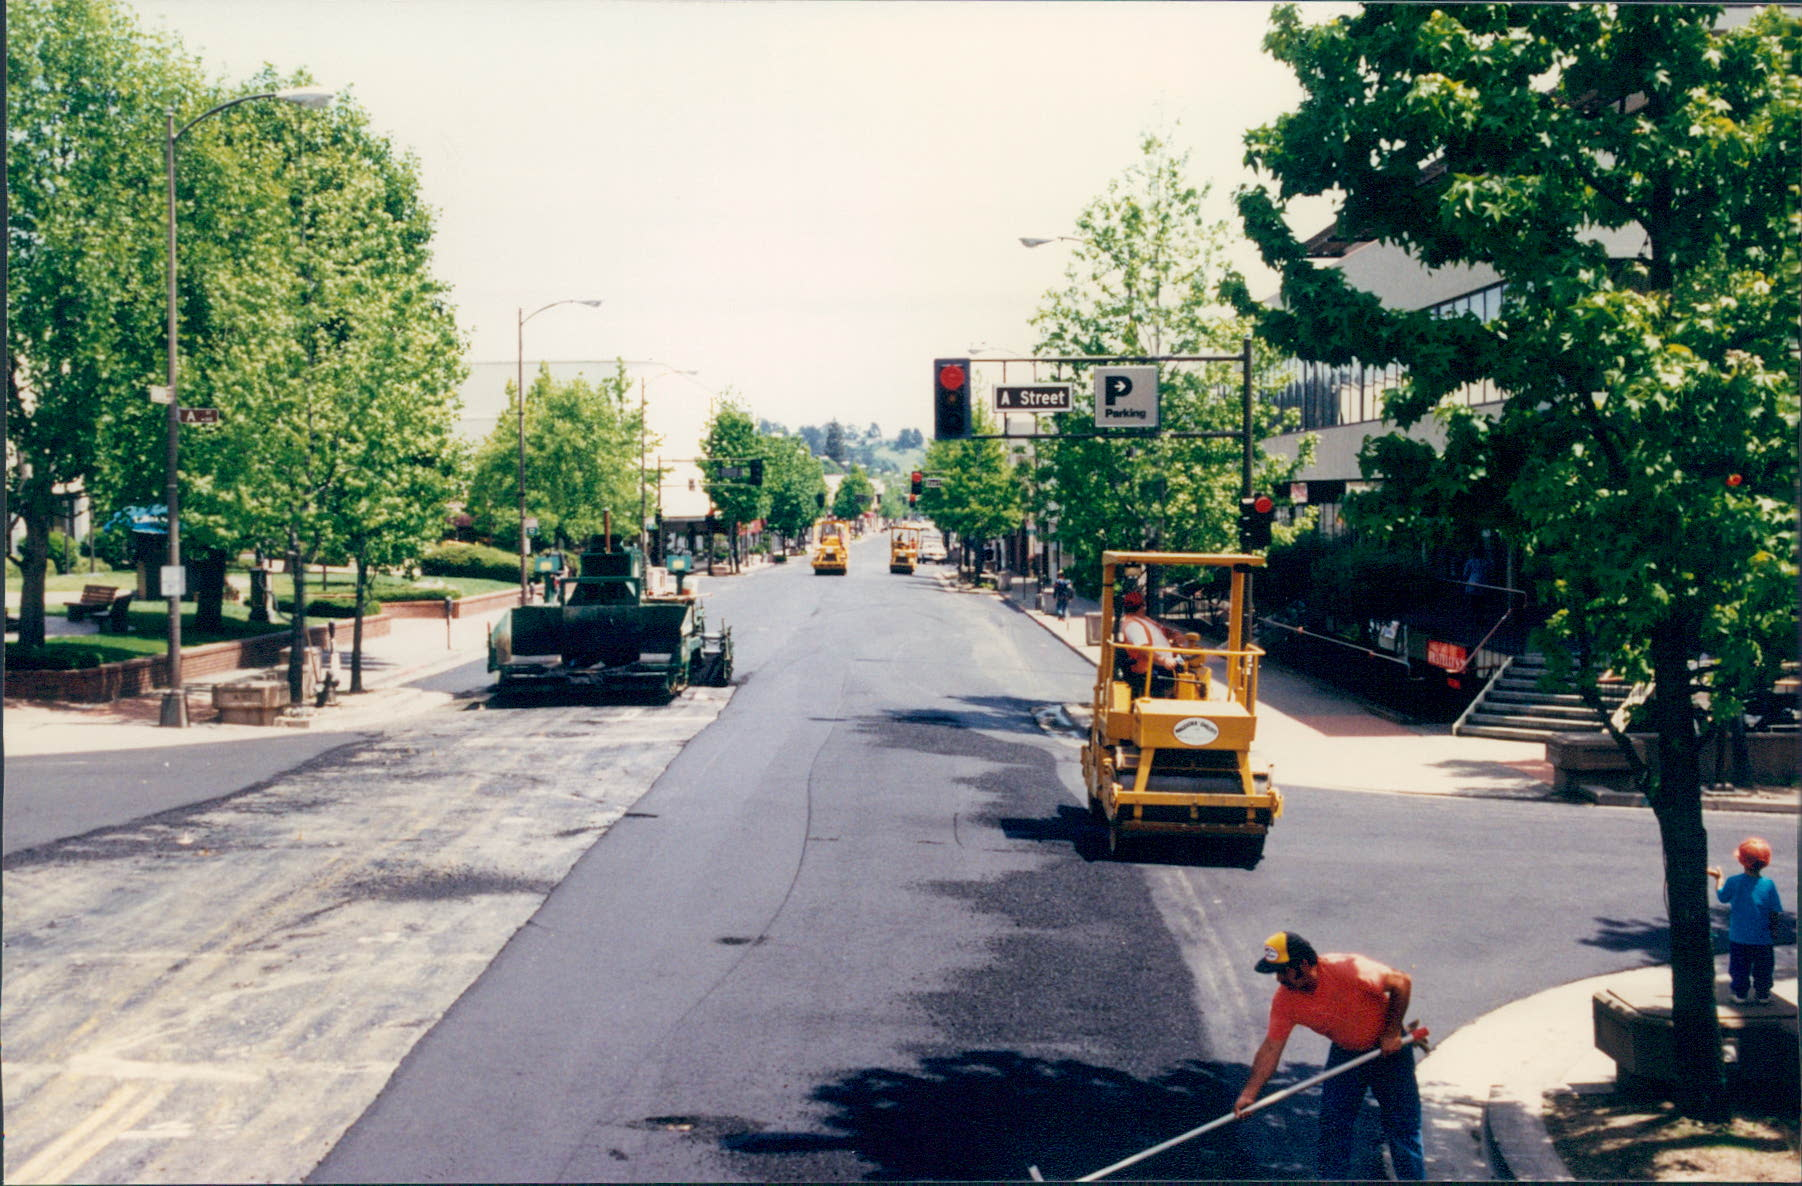 01 - 4th st pave.jpg